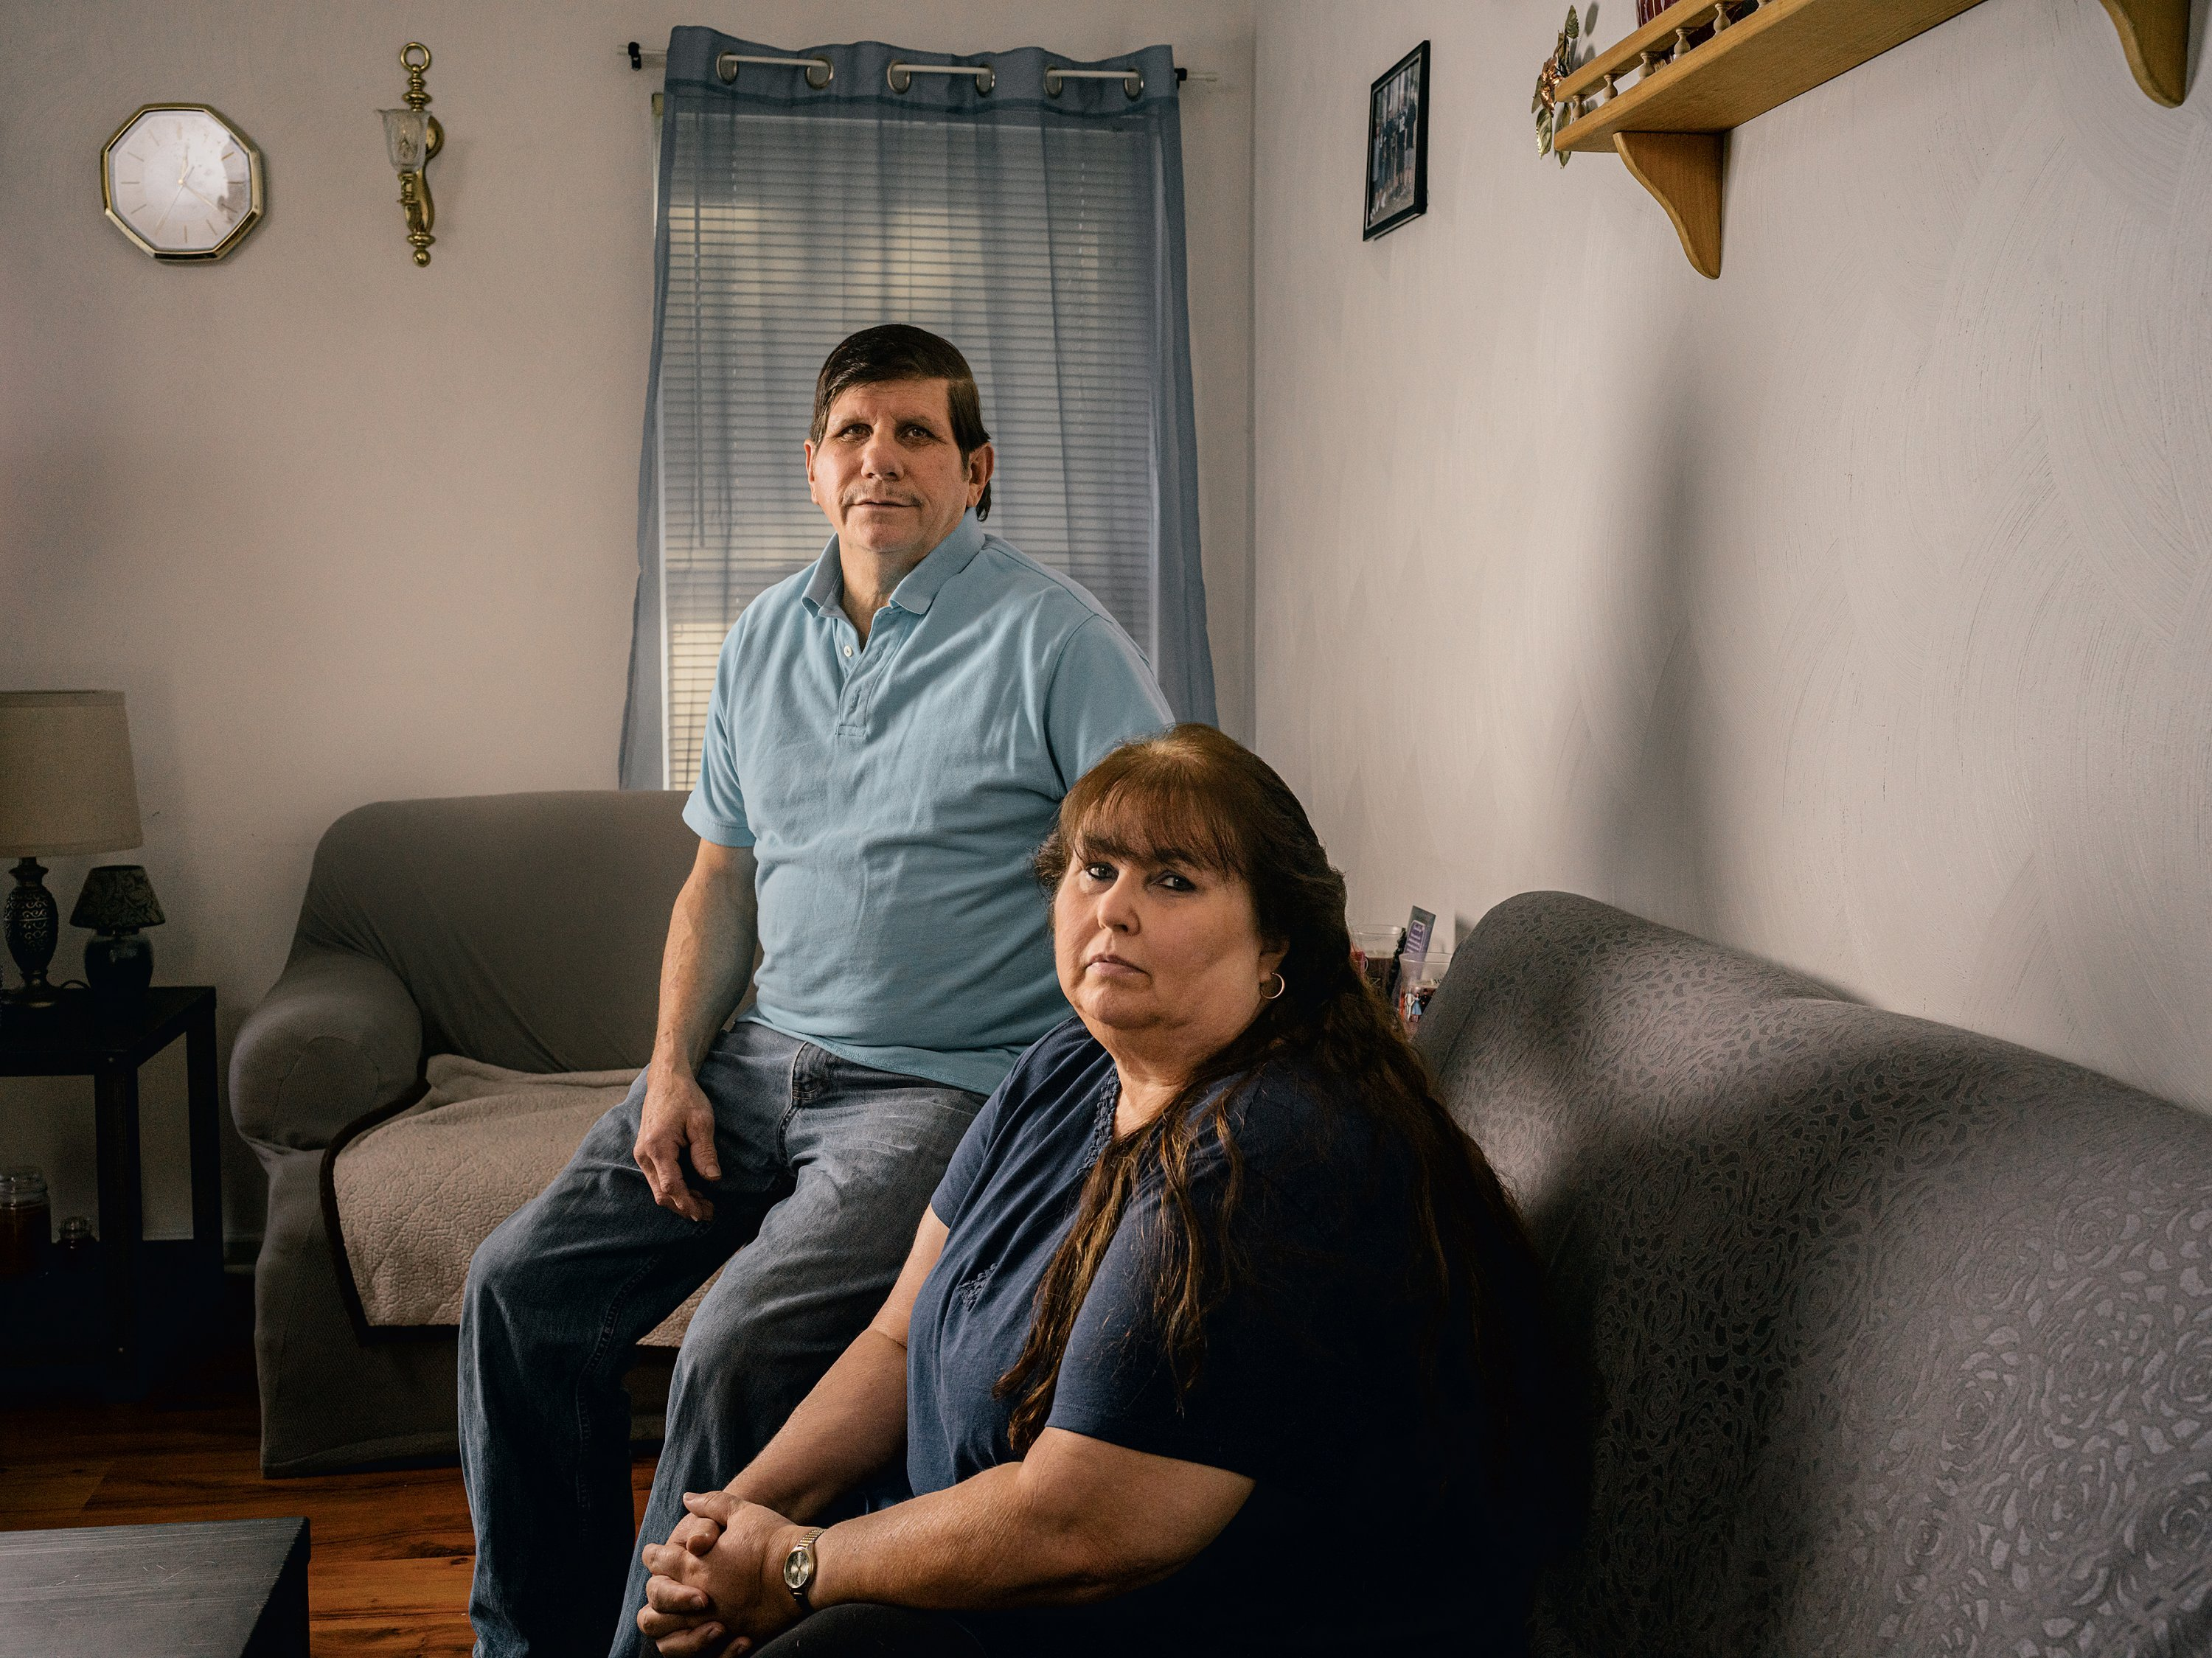 Stevens and his wife divorced after he went to prison. She never doubted his innocence, though. They reunited and live together in southern Virginia.